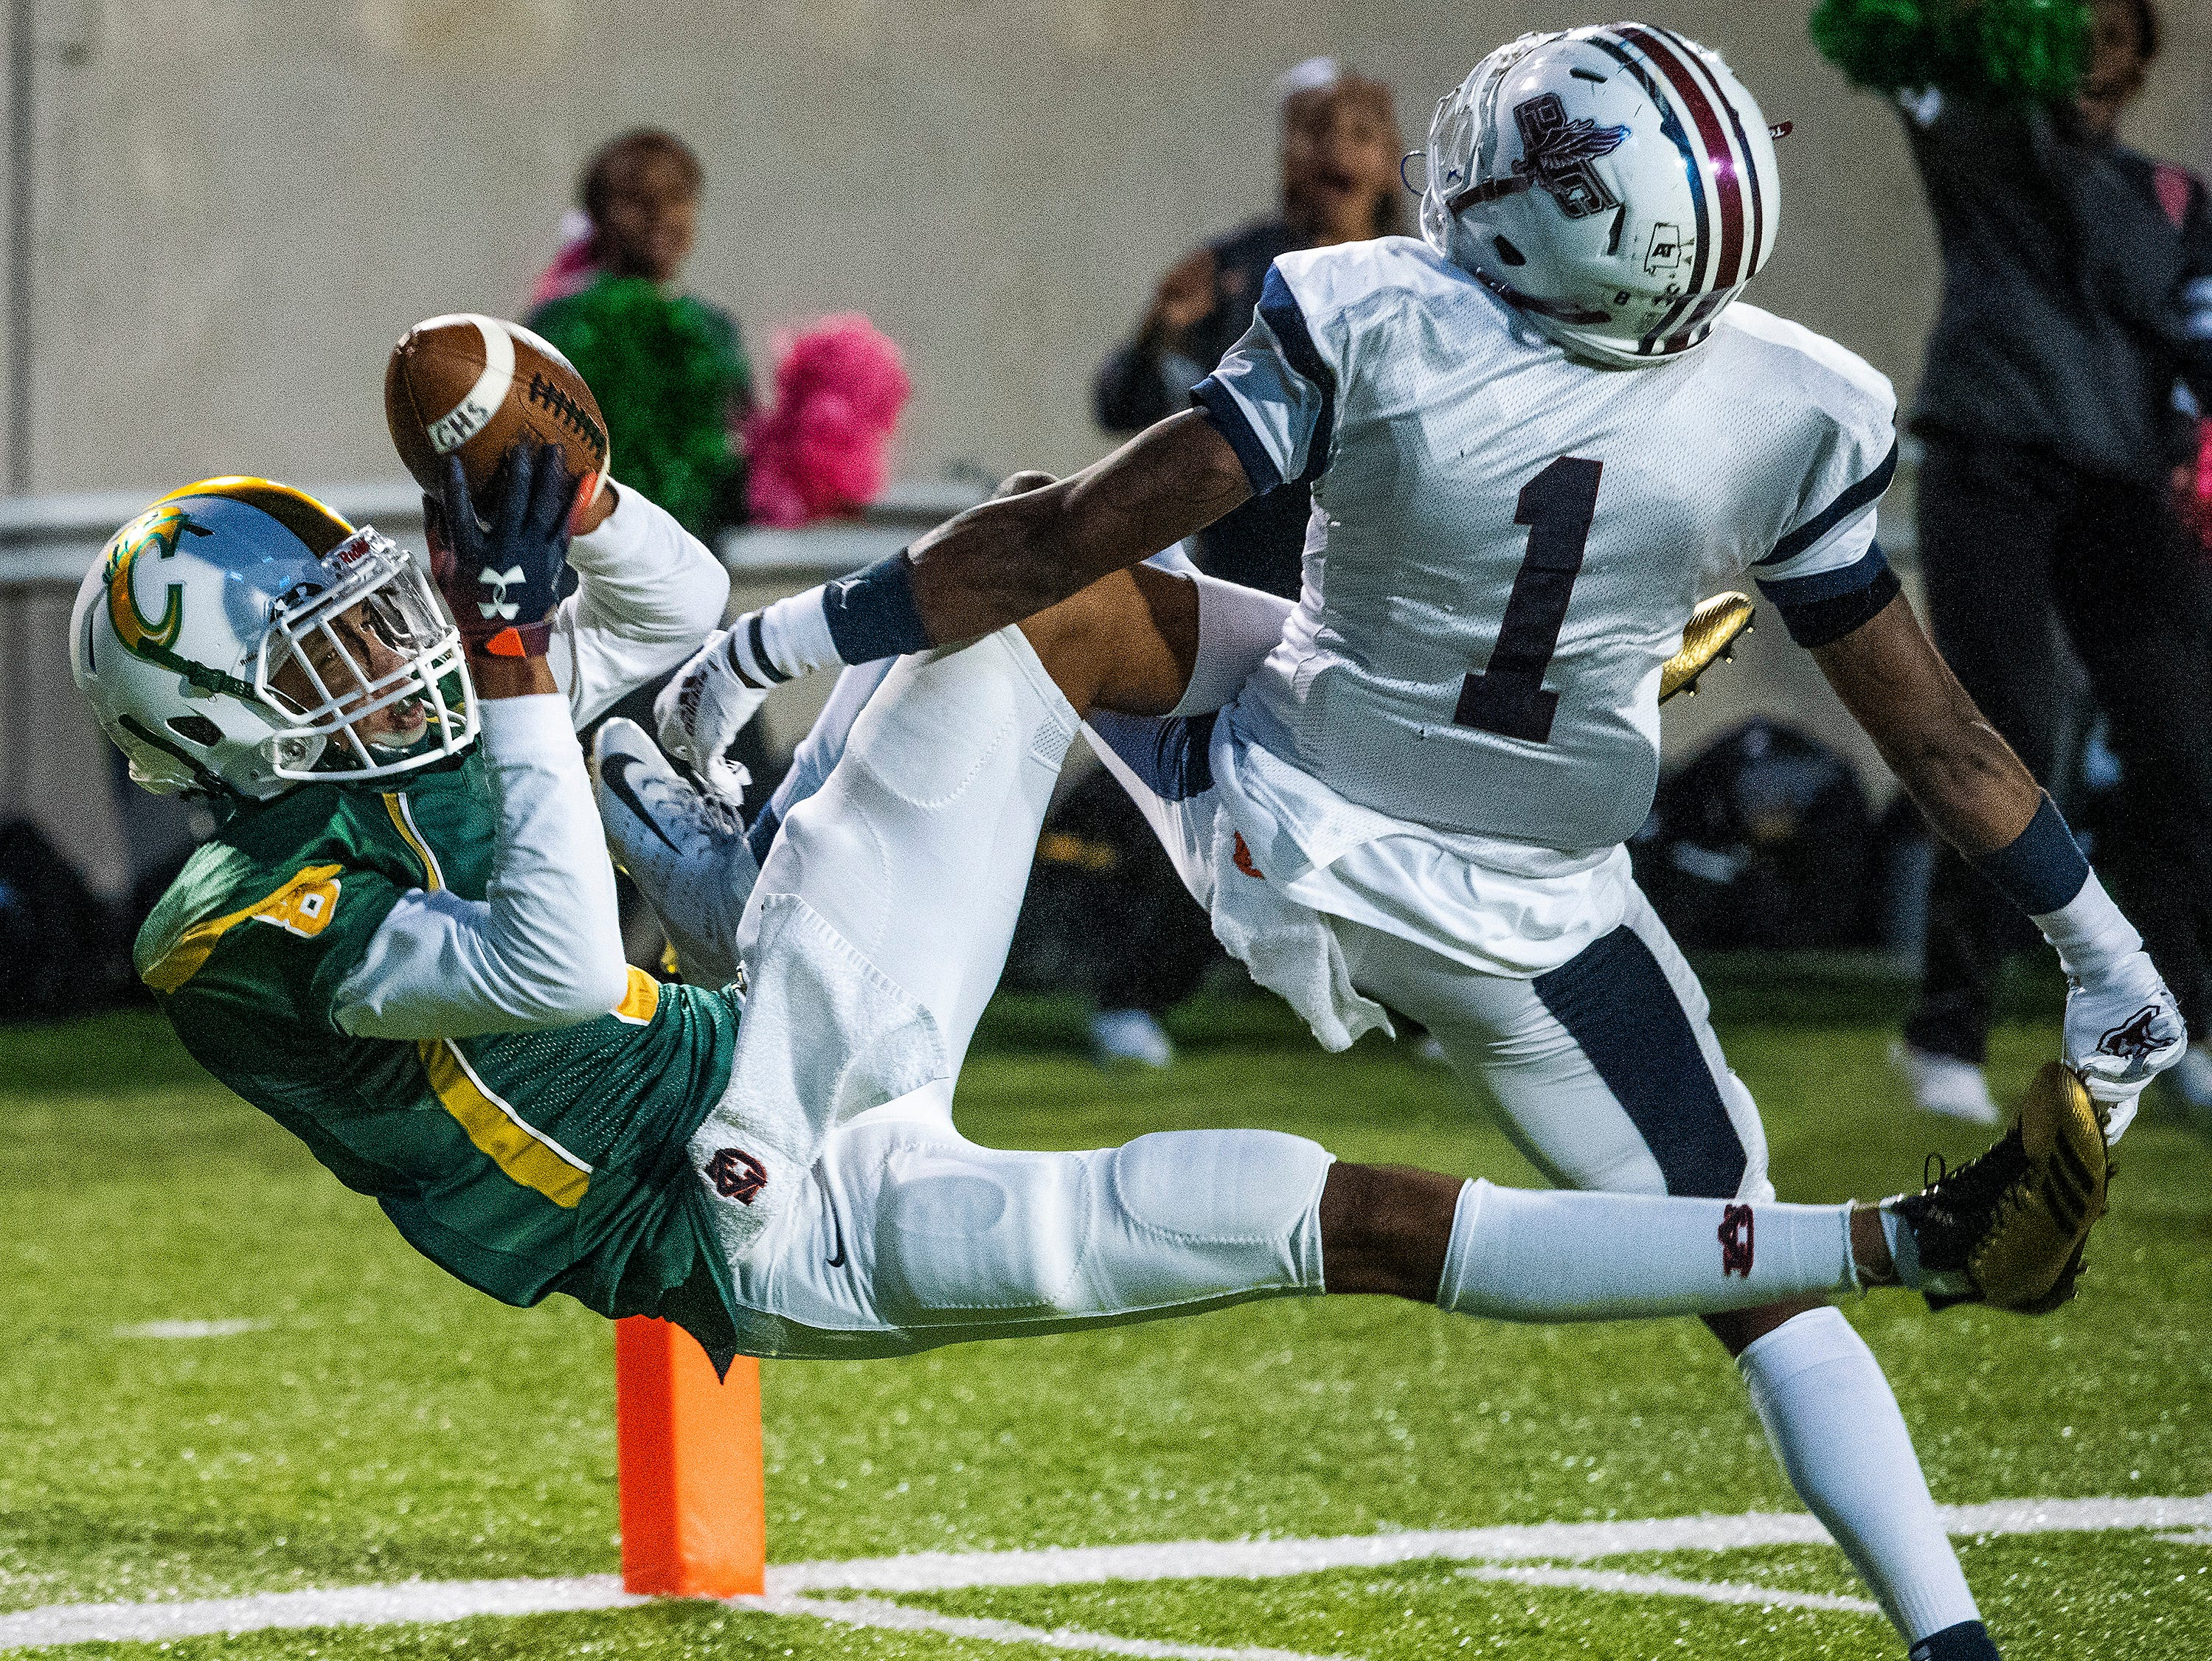 Carver's Ethan Stinson (8) loses control of the ball as he falls into the engine on an incomplete pass while defended by Park Crossing's Jaden Taylor at Cramton Bowl in Montgomery, Ala., on Friday October 26, 2018.